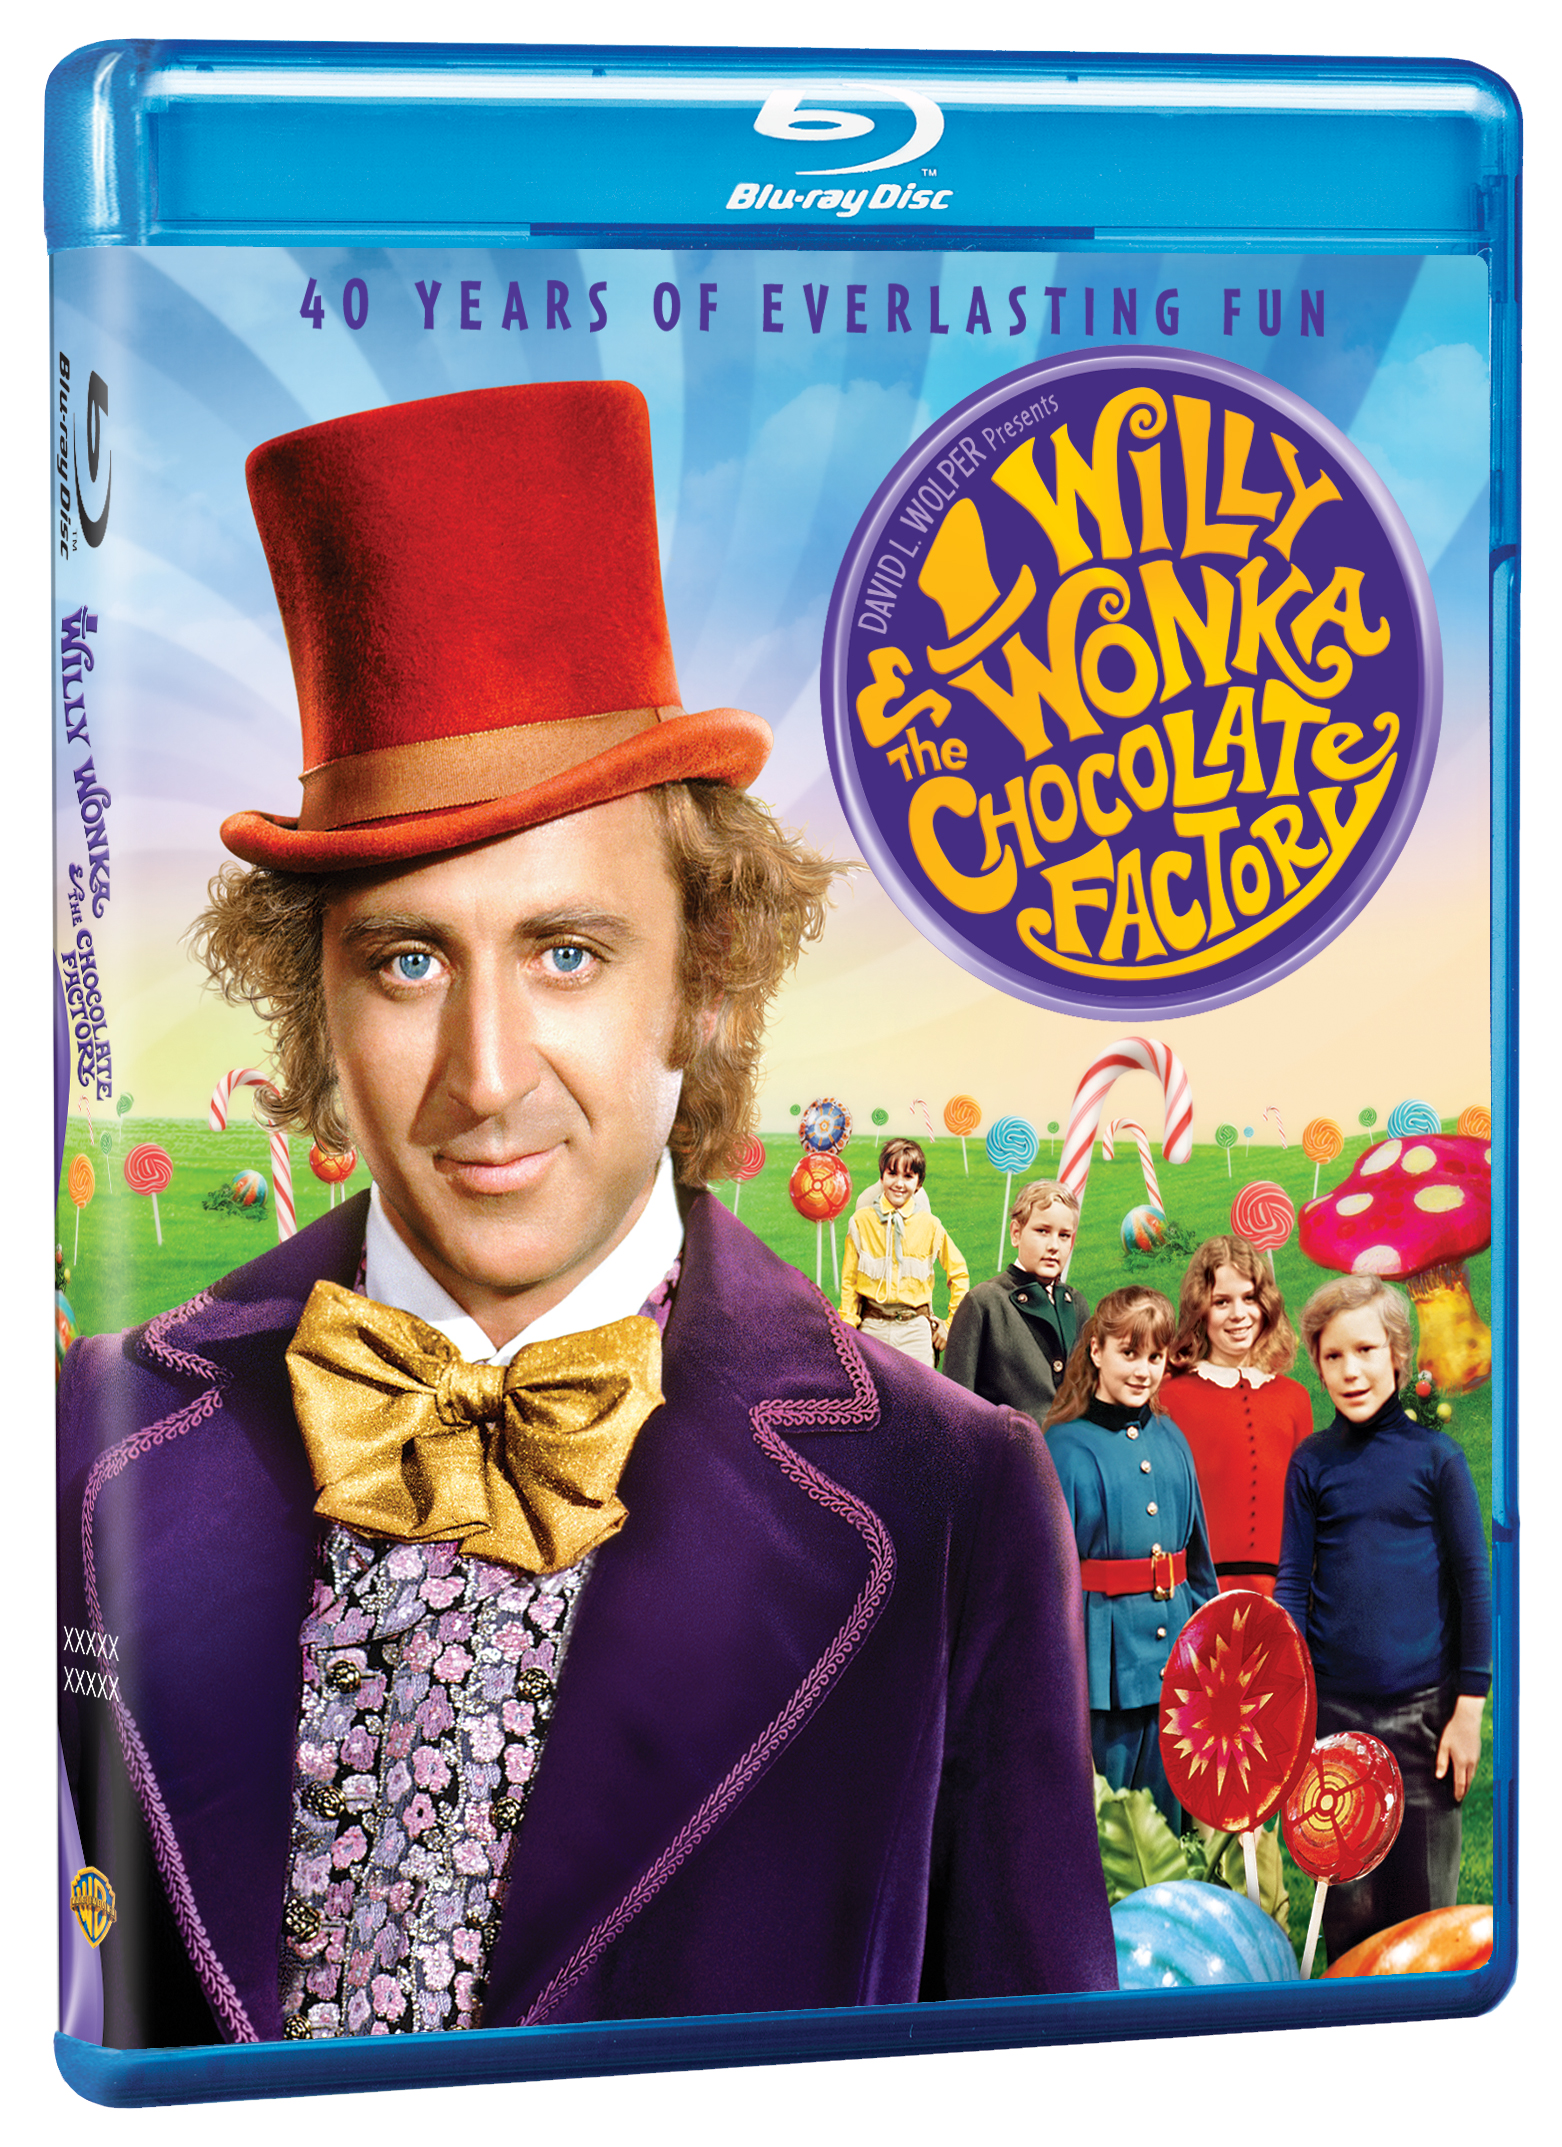 willy wonka vs charlie and the chocolate factory essay The late gene wilder's most beloved movie, willy wonka and the chocolate factory, is 45 years old here's what the actors who played the five kids — charlie bucket, violet beauregarde, augustus gloop, veruca salt, and mike teavee — as well as an oompa loompa, are up to these days.